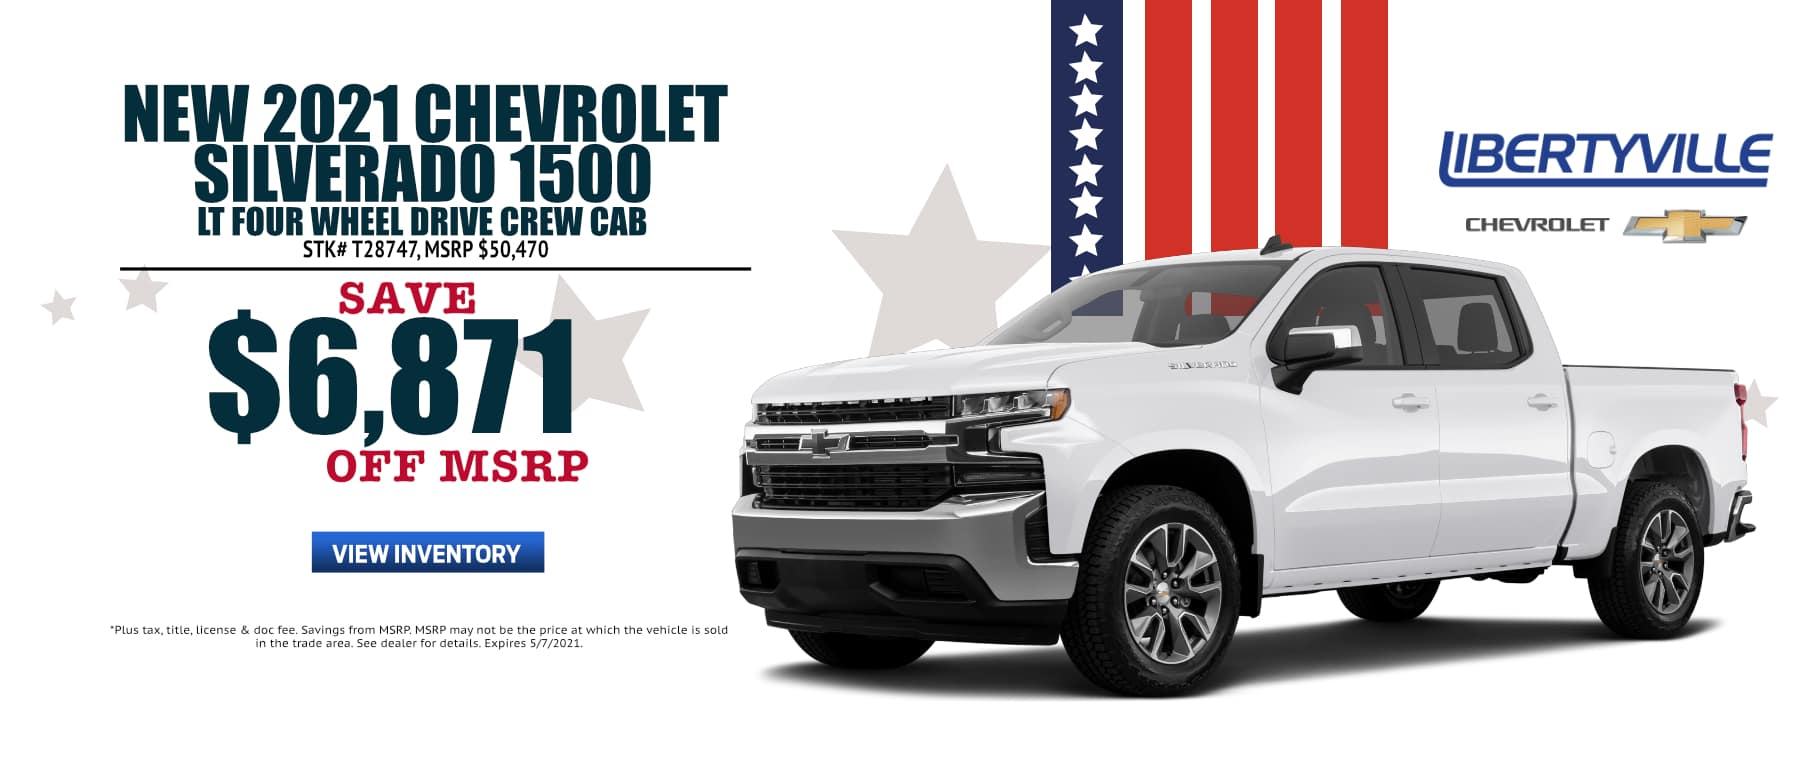 April_2021_Silverado_Libertyville_Chevrolet_